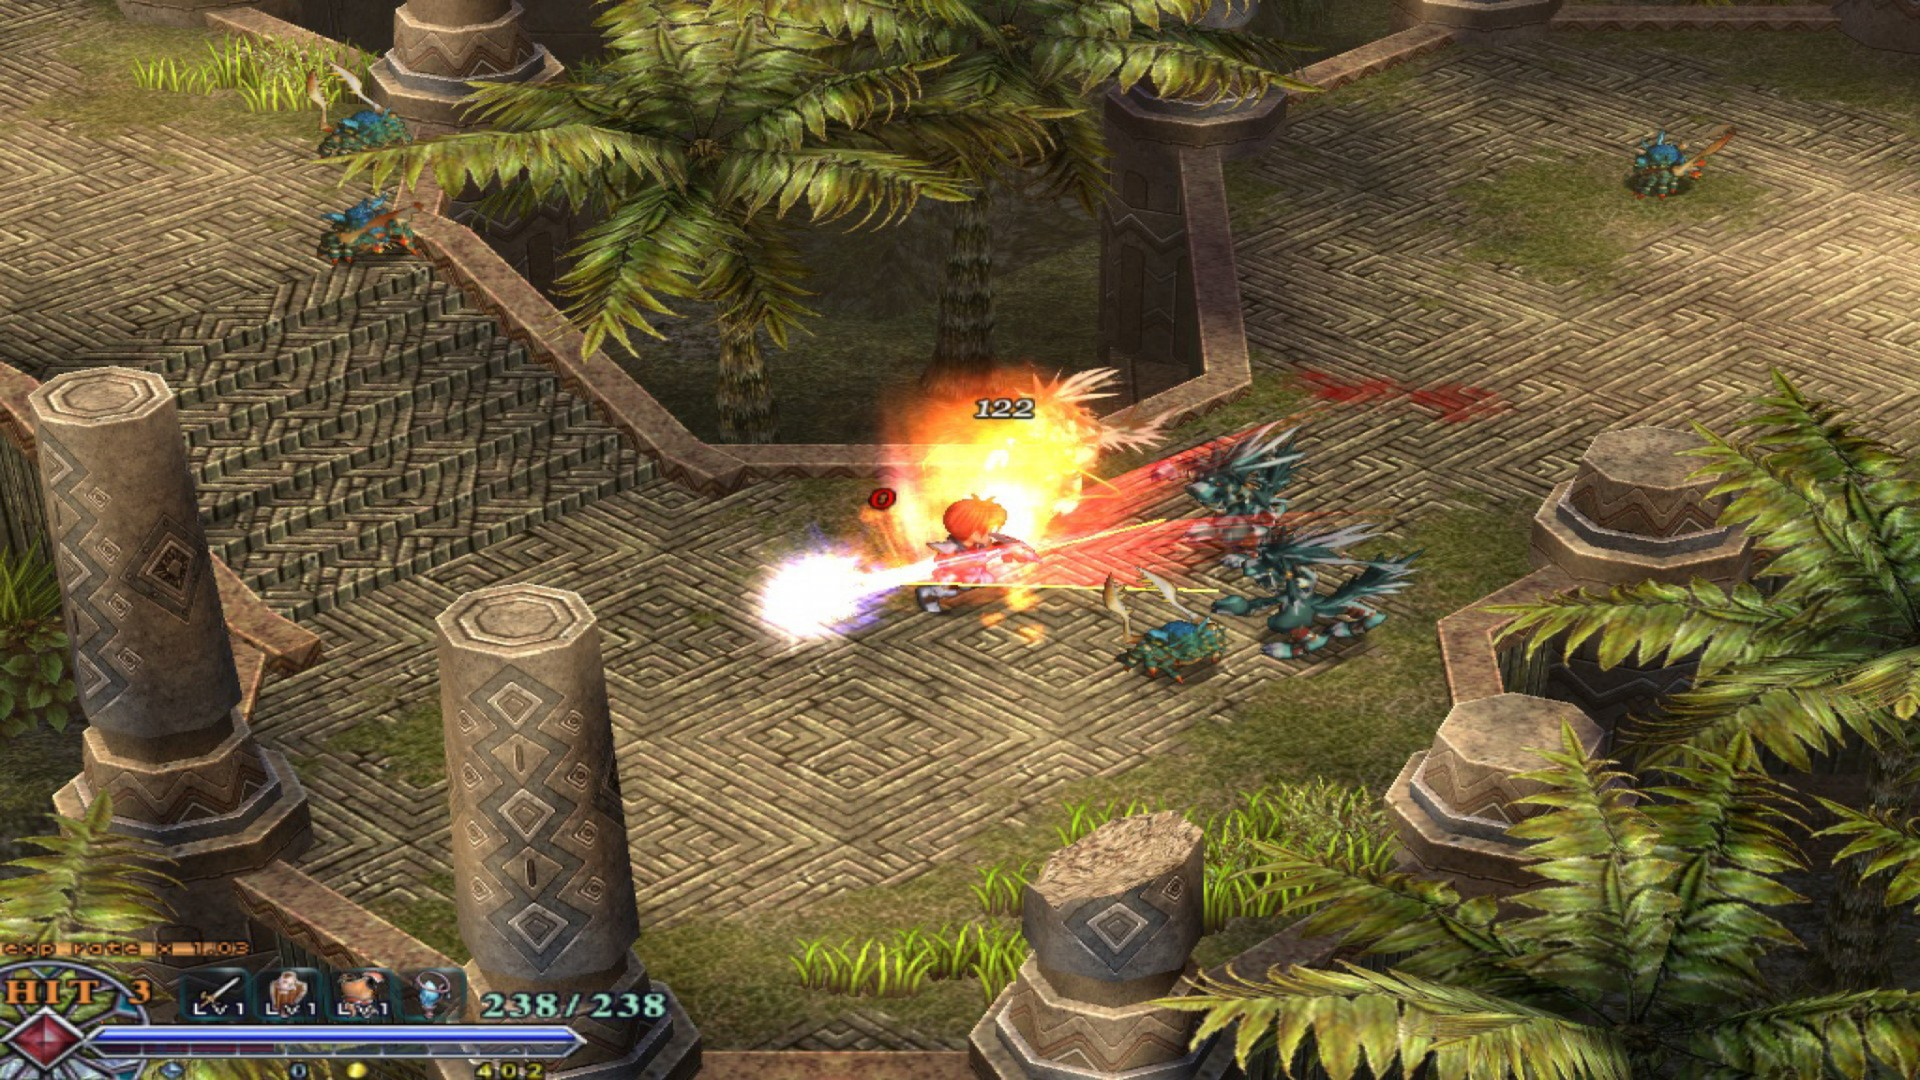 Ys: The Oath in Felghana screenshot 1